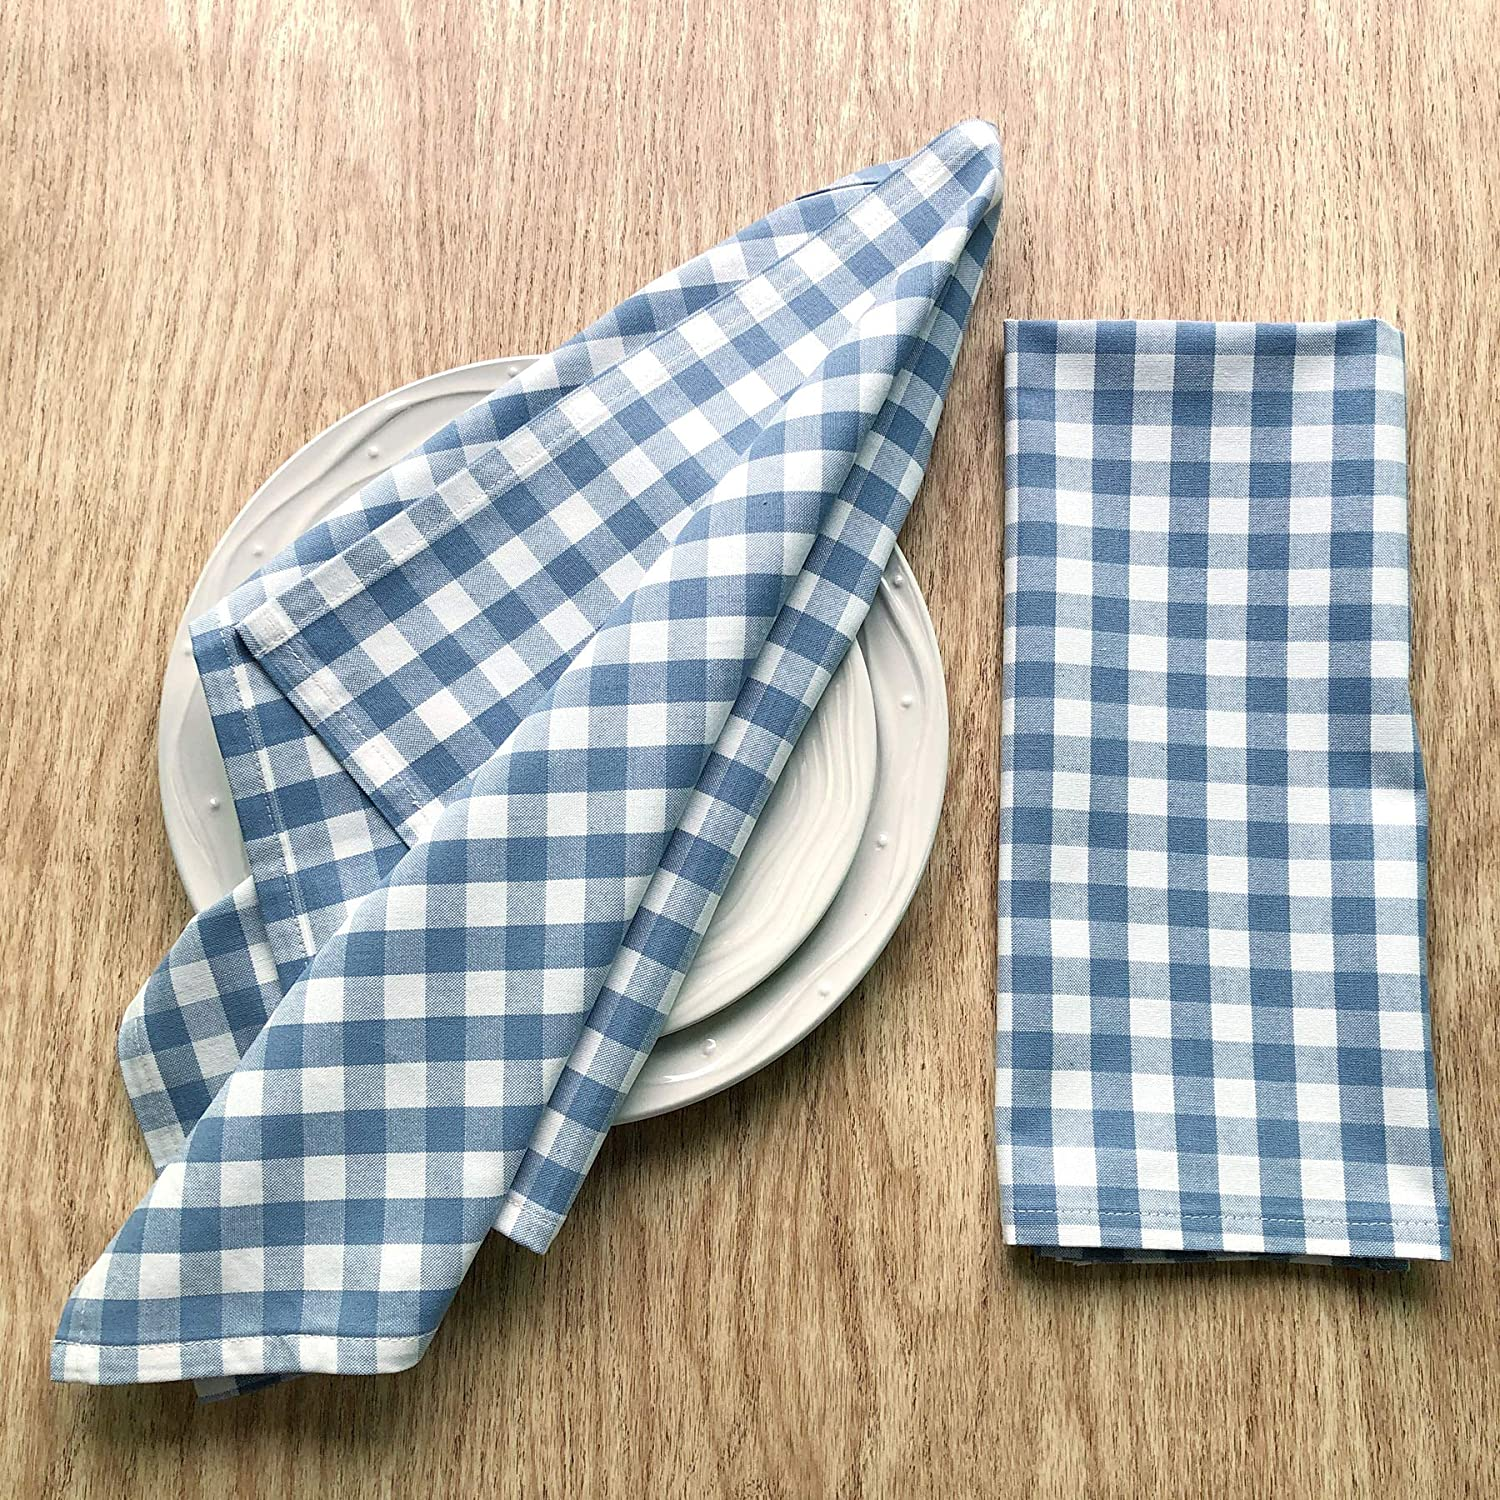 CAIT CHAPMAN HOME COLLECTION Simple Pure Cotton Soft and Absorbent Fabric Woven Dish Towels/Tea Towels, Pack of 2 (Blue Plaid)